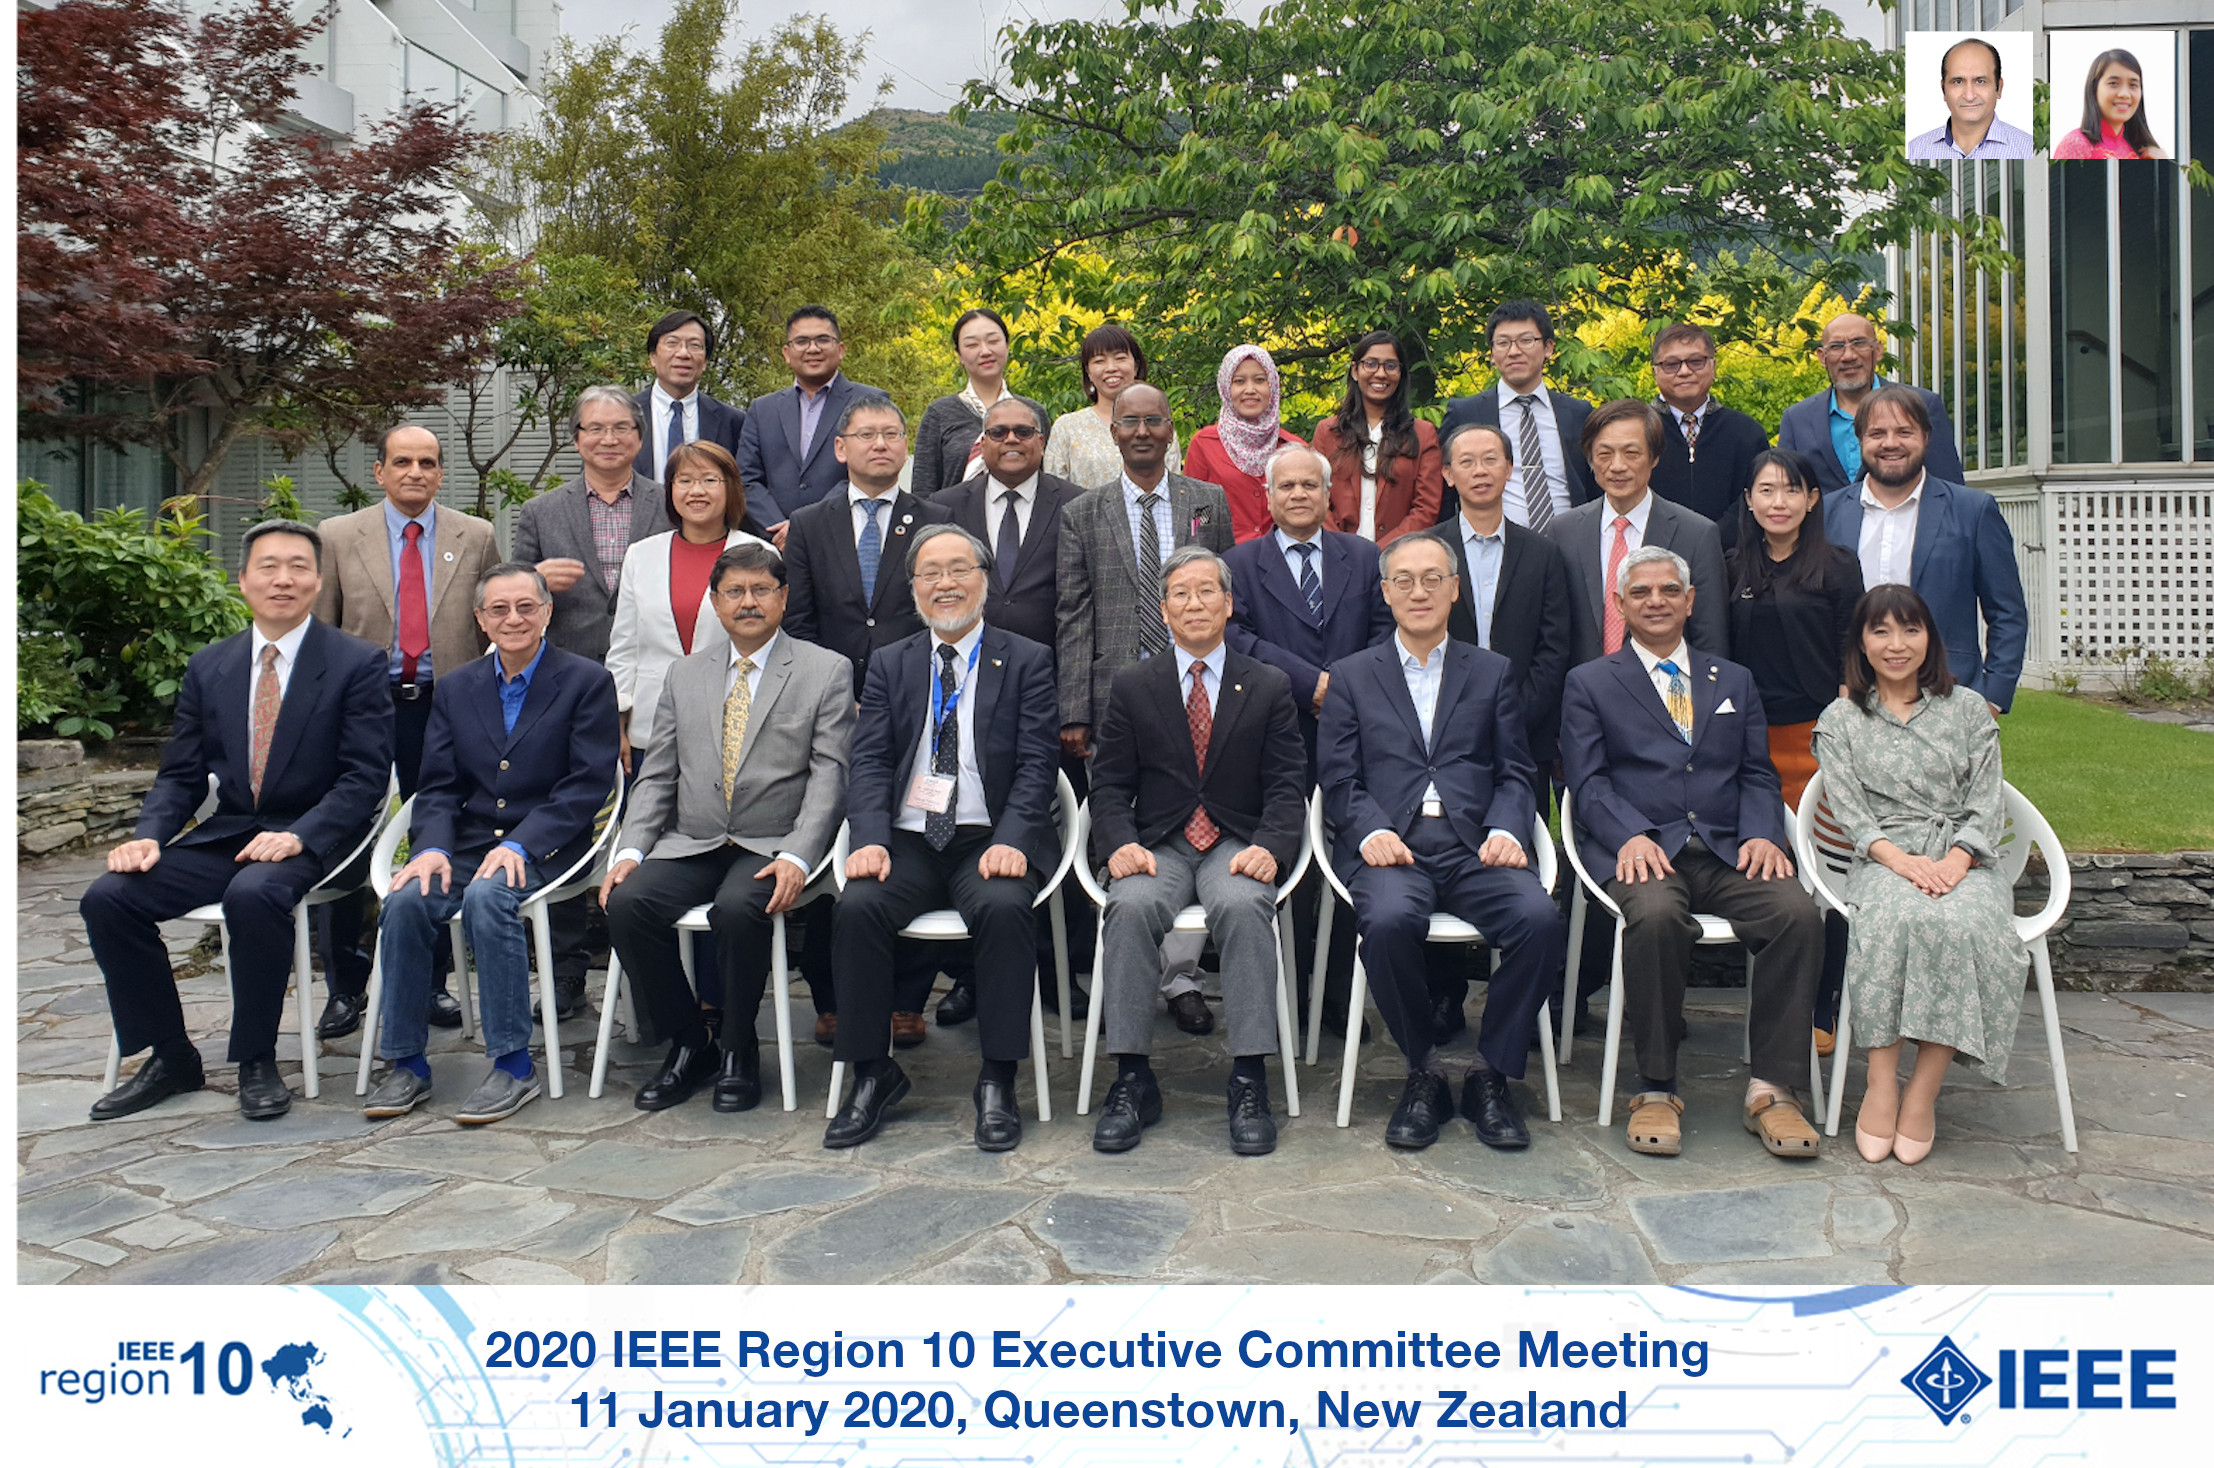 2020 IEEE Region 10 Executive Committee members